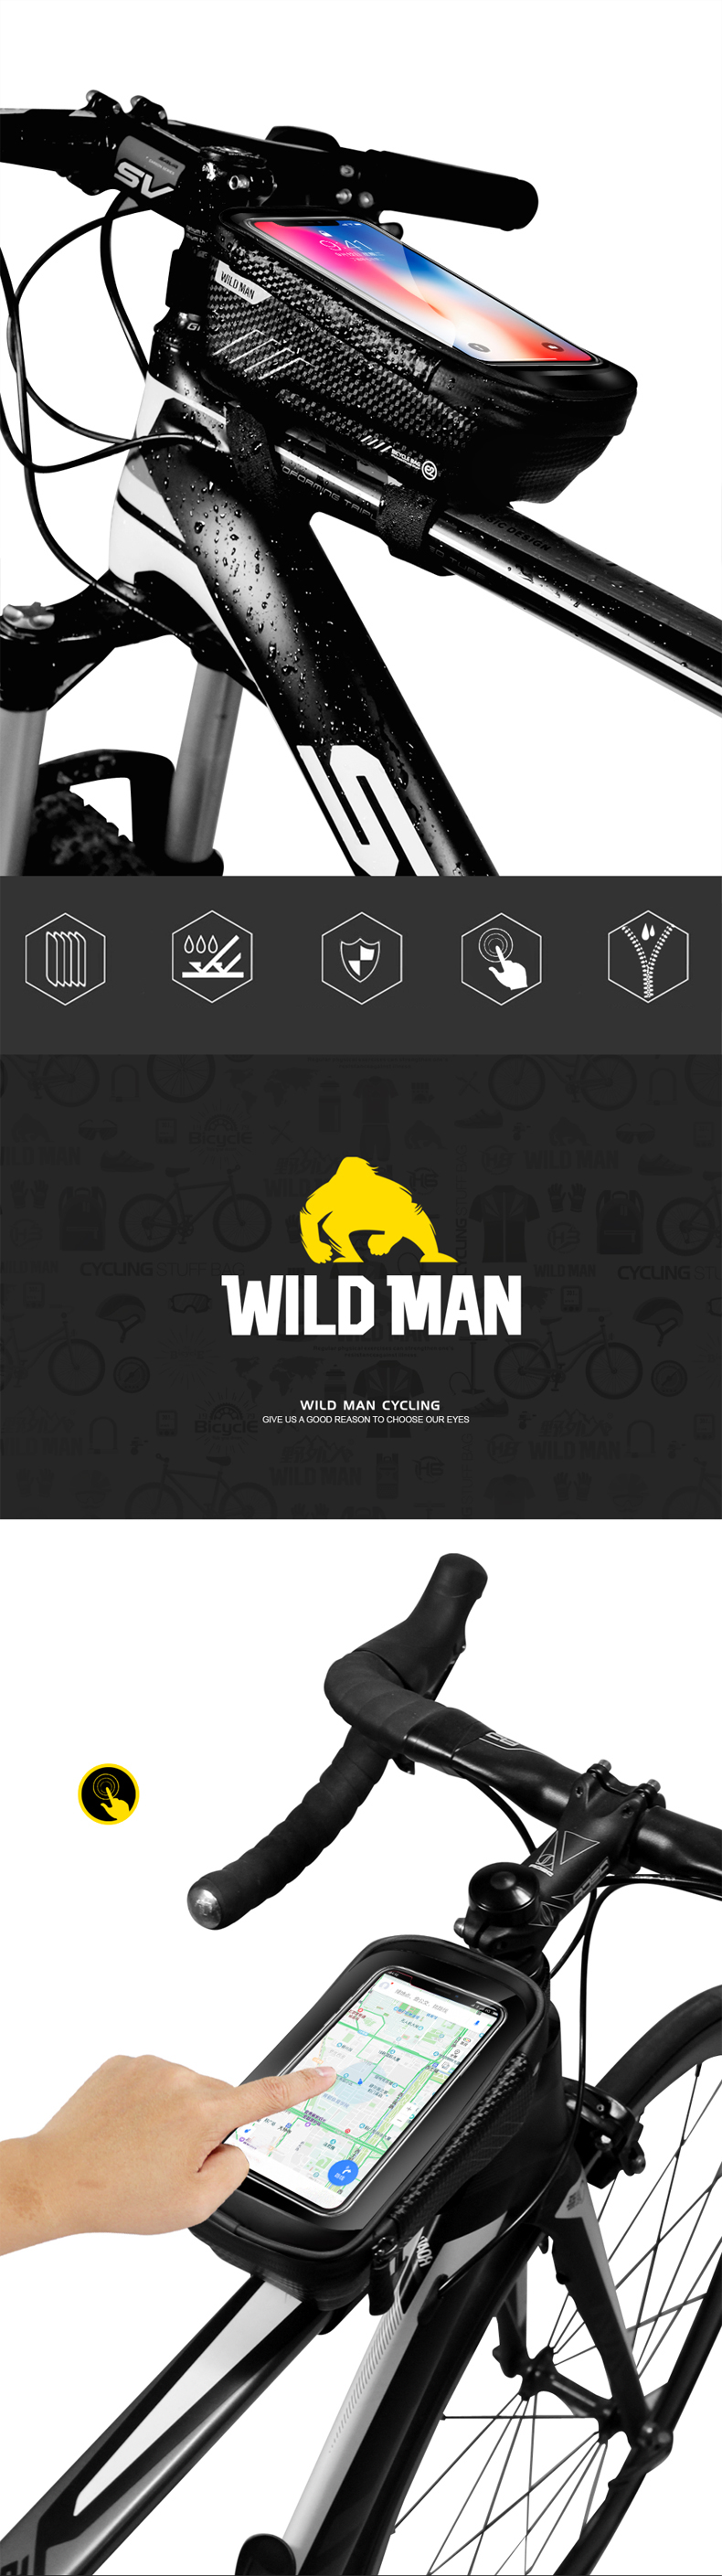 Clearance WILD MAN Mountain Bike Bag Rainproof Waterproof Mtb Front Bag 6.2inch Mobile Phone Case Bicycle Top Tube Bag Cycling Accessories 0